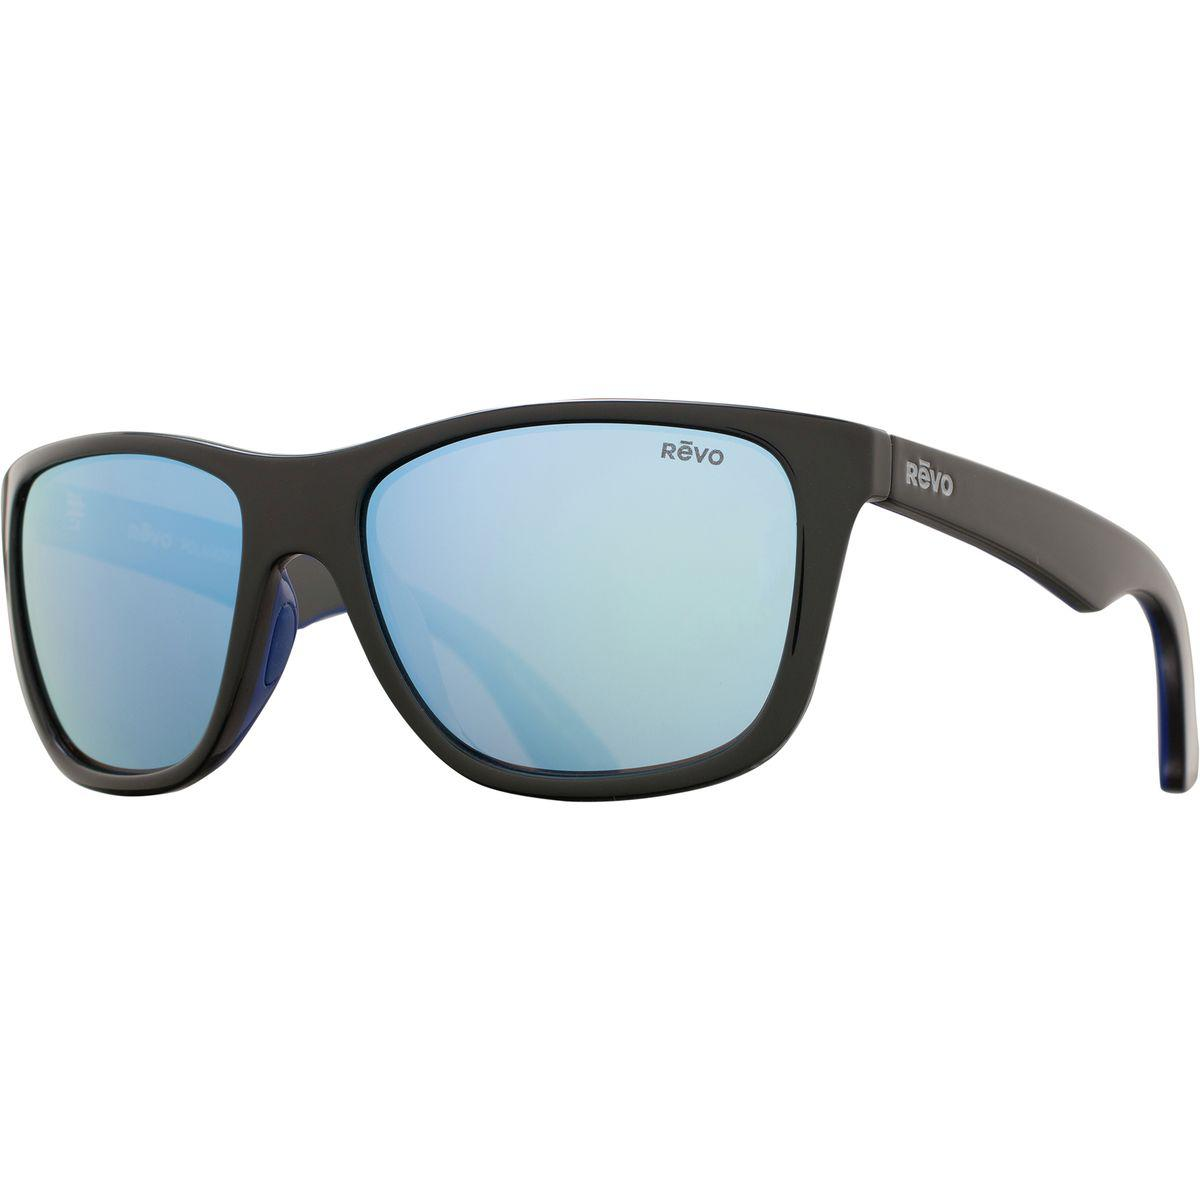 ba053499da4 Lyst - Revo Otis Sunglasses - Polarized in Blue for Men